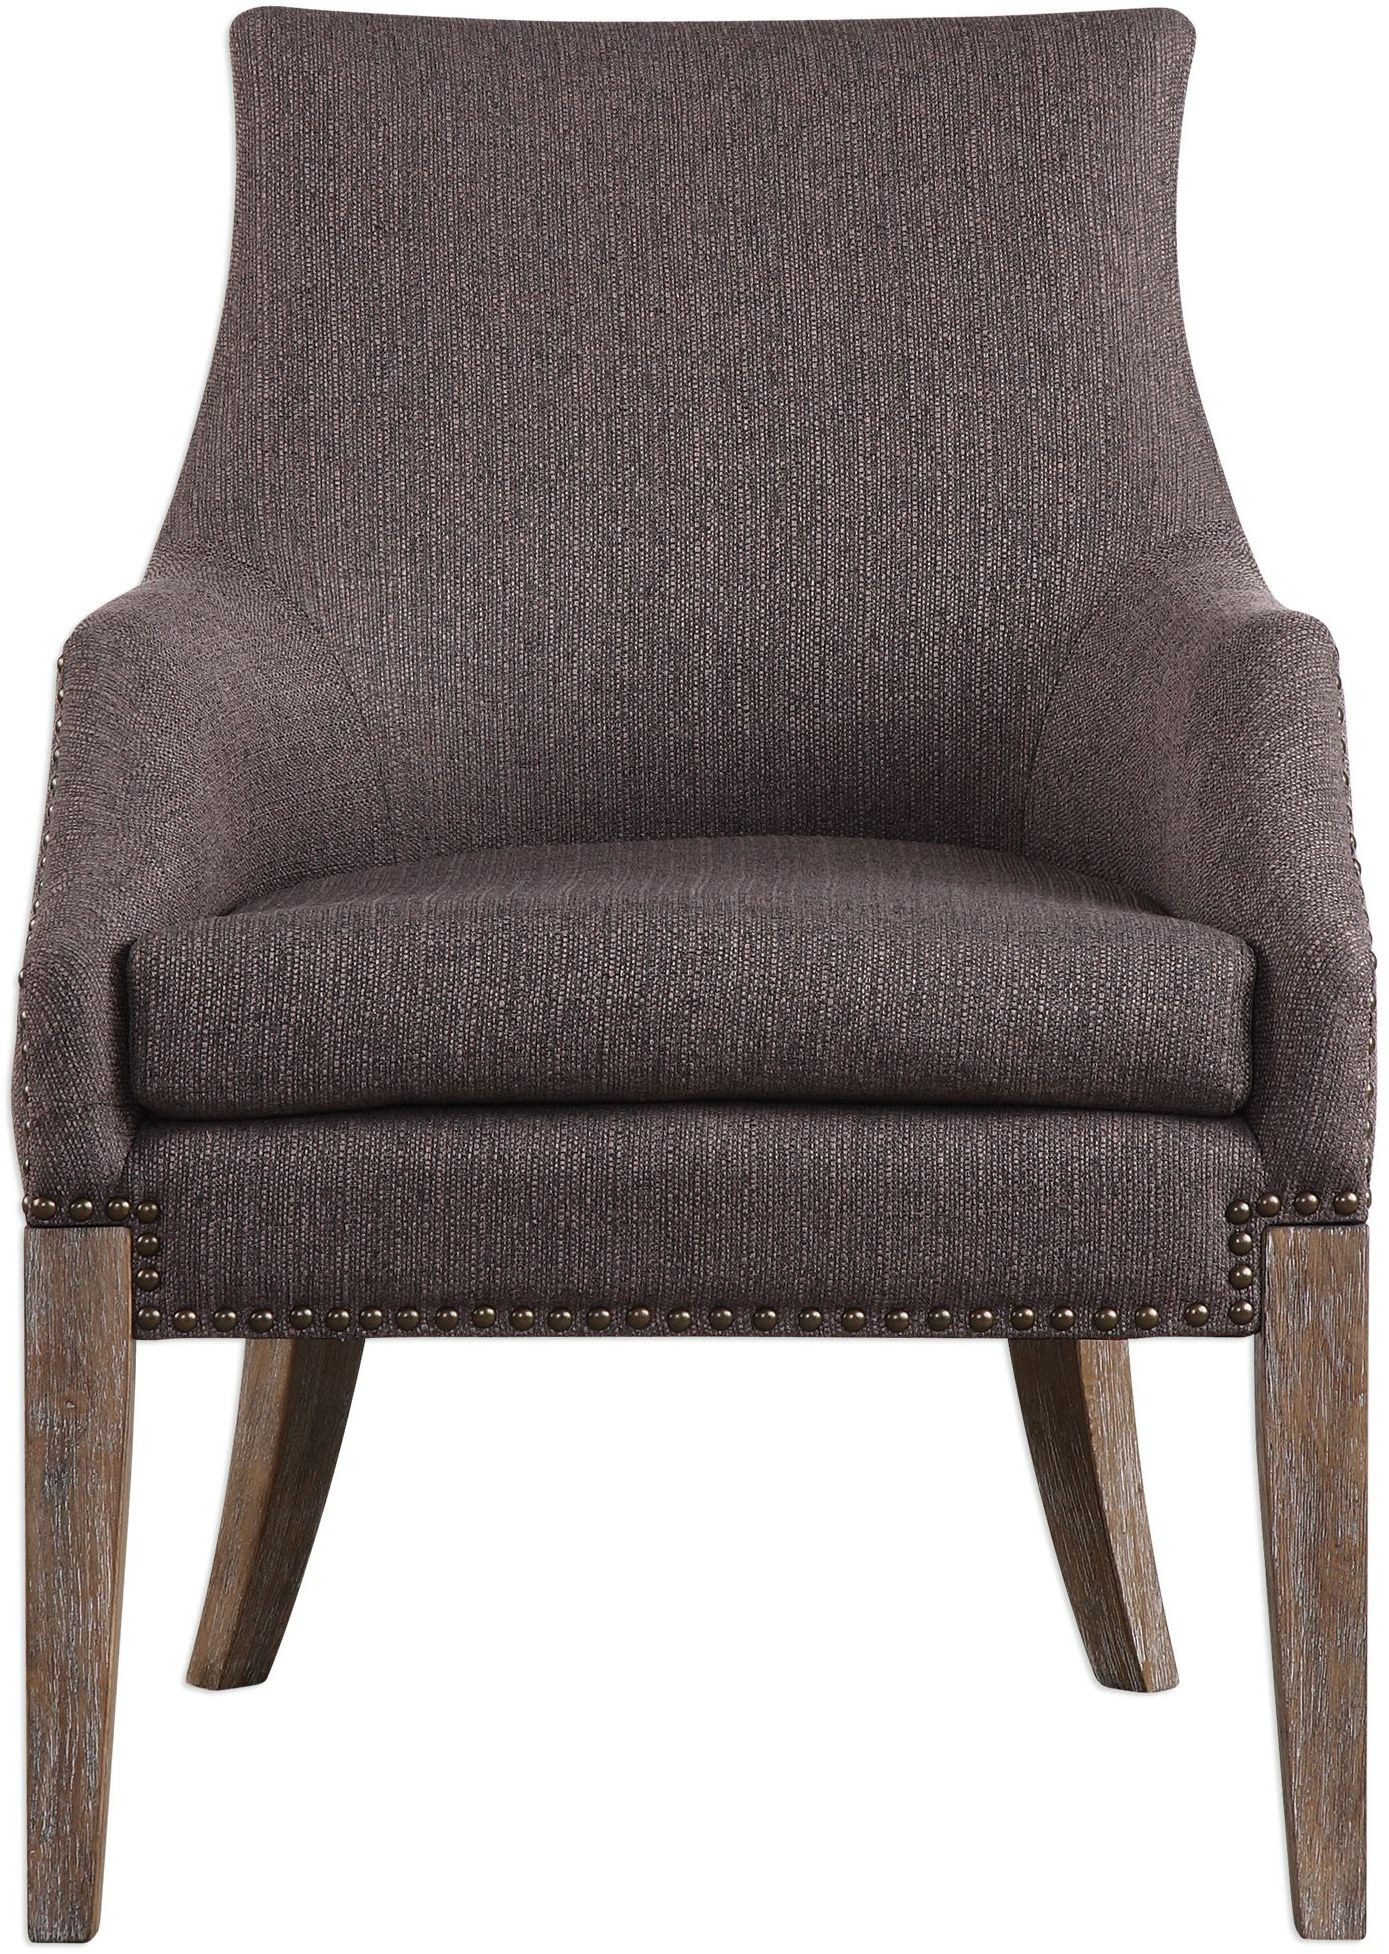 Tan Accent Chair Karson Caramel Tan Accent Chair From Uttermost Coleman